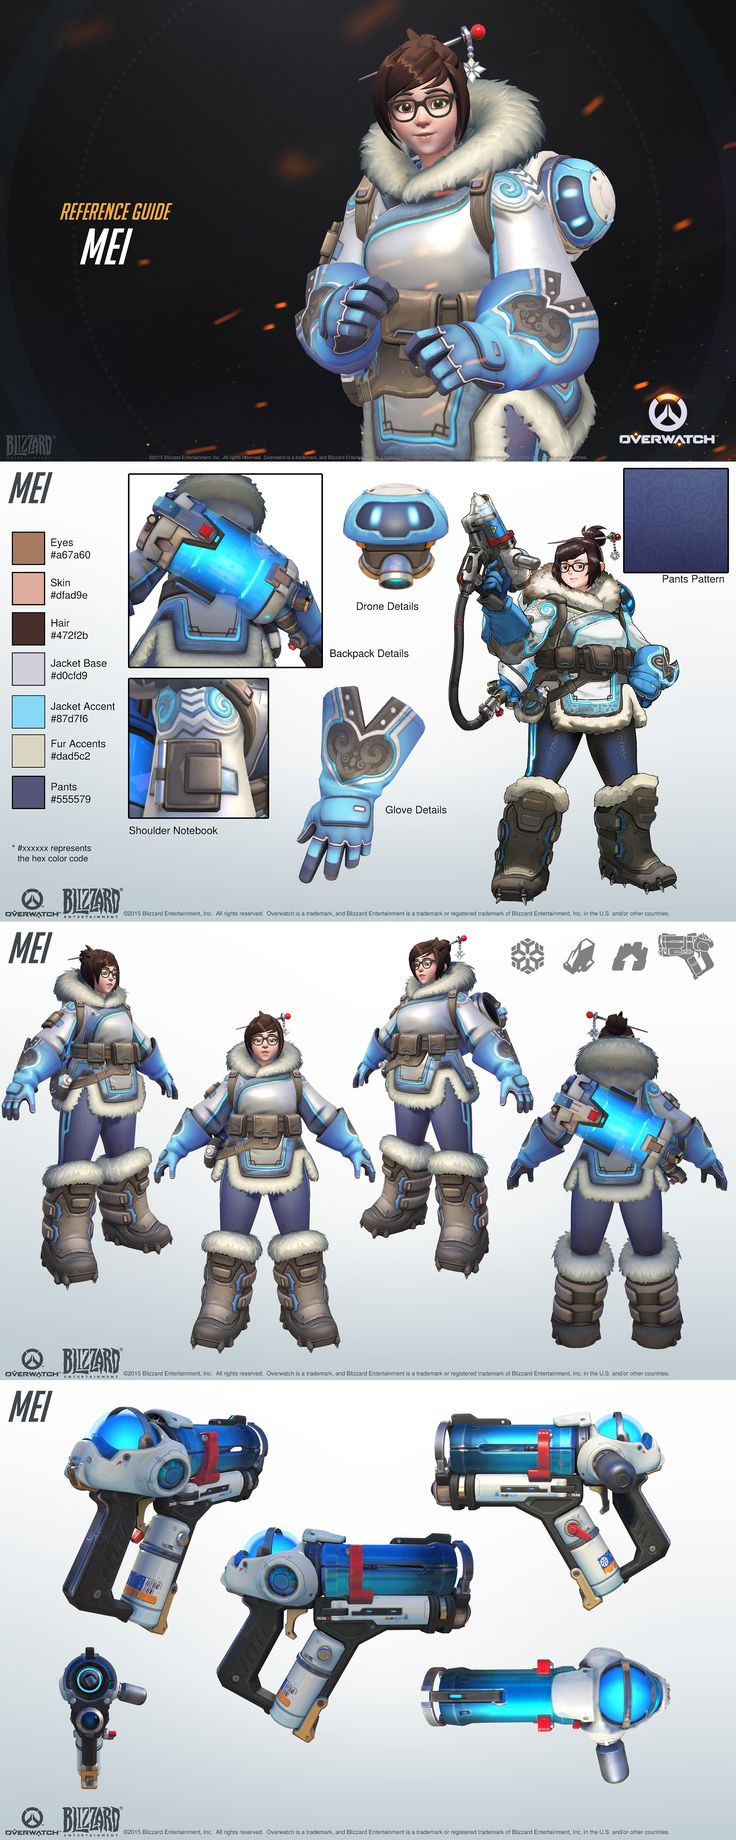 Overwatch - Mei Reference Guide